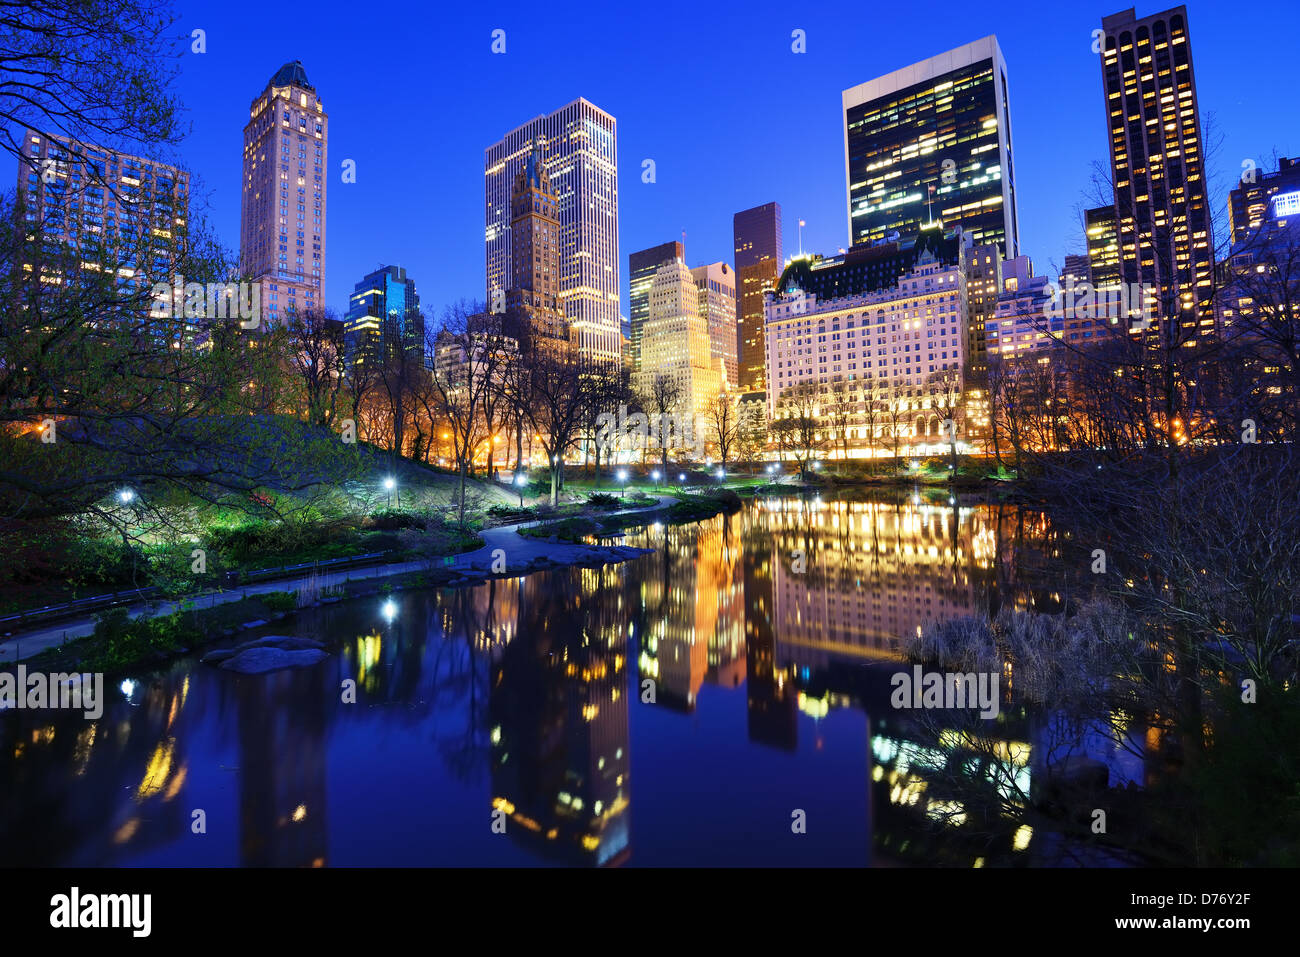 Central Park and luxury apartment and office buildings in New York City - Stock Image